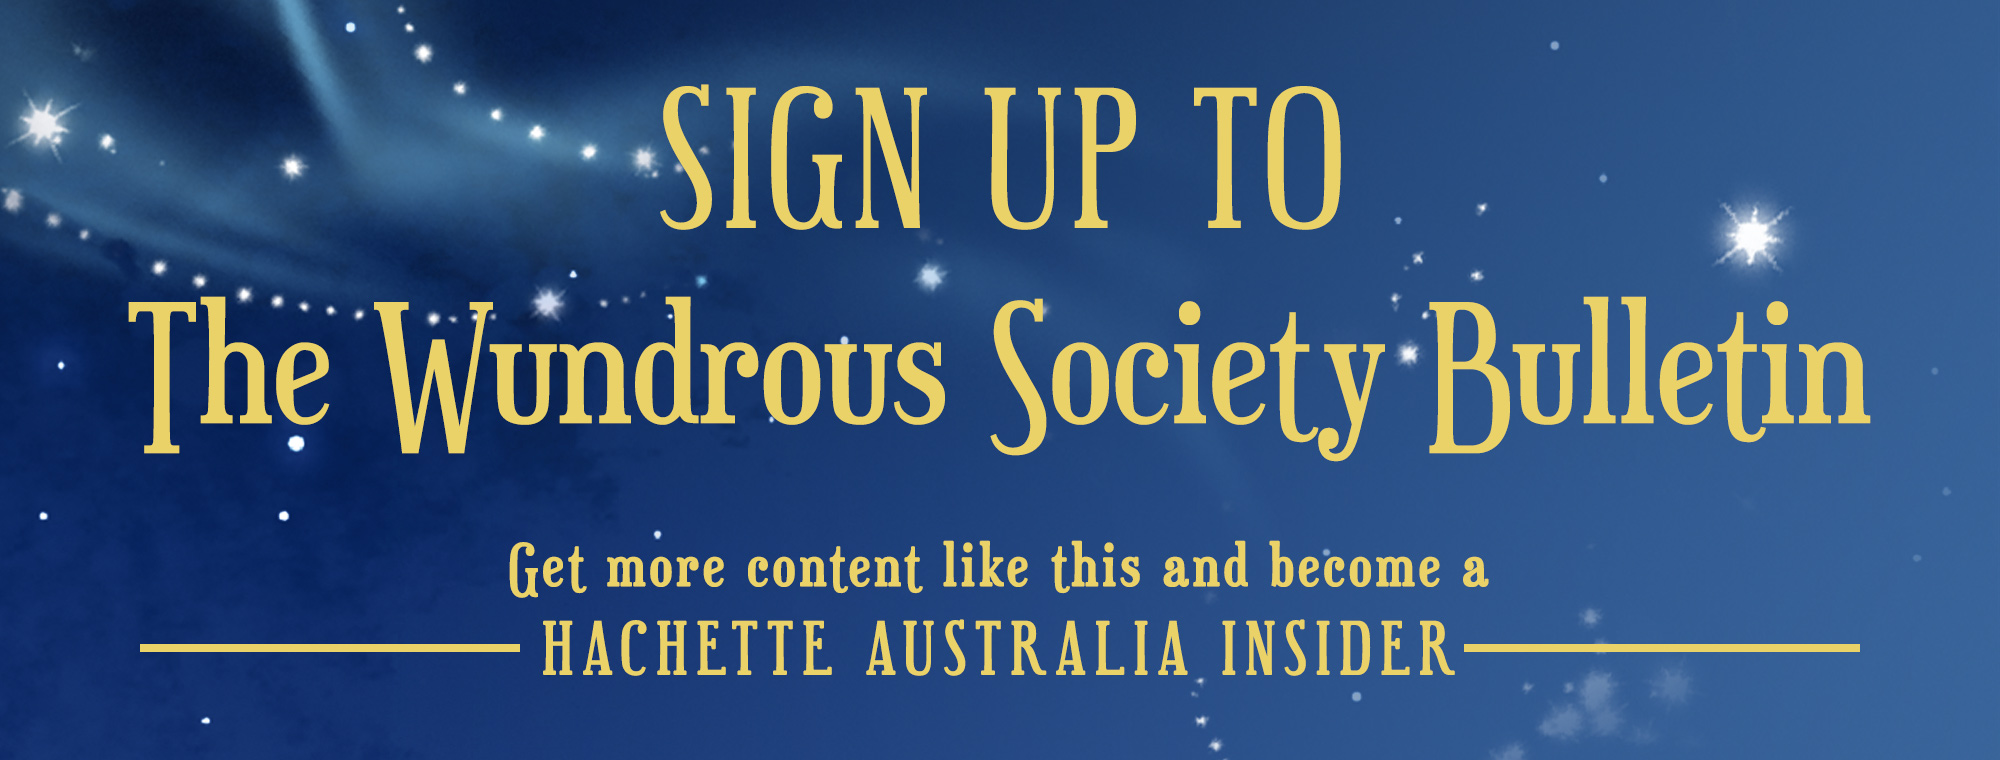 Sign up to The Wundrous Society Bulletin